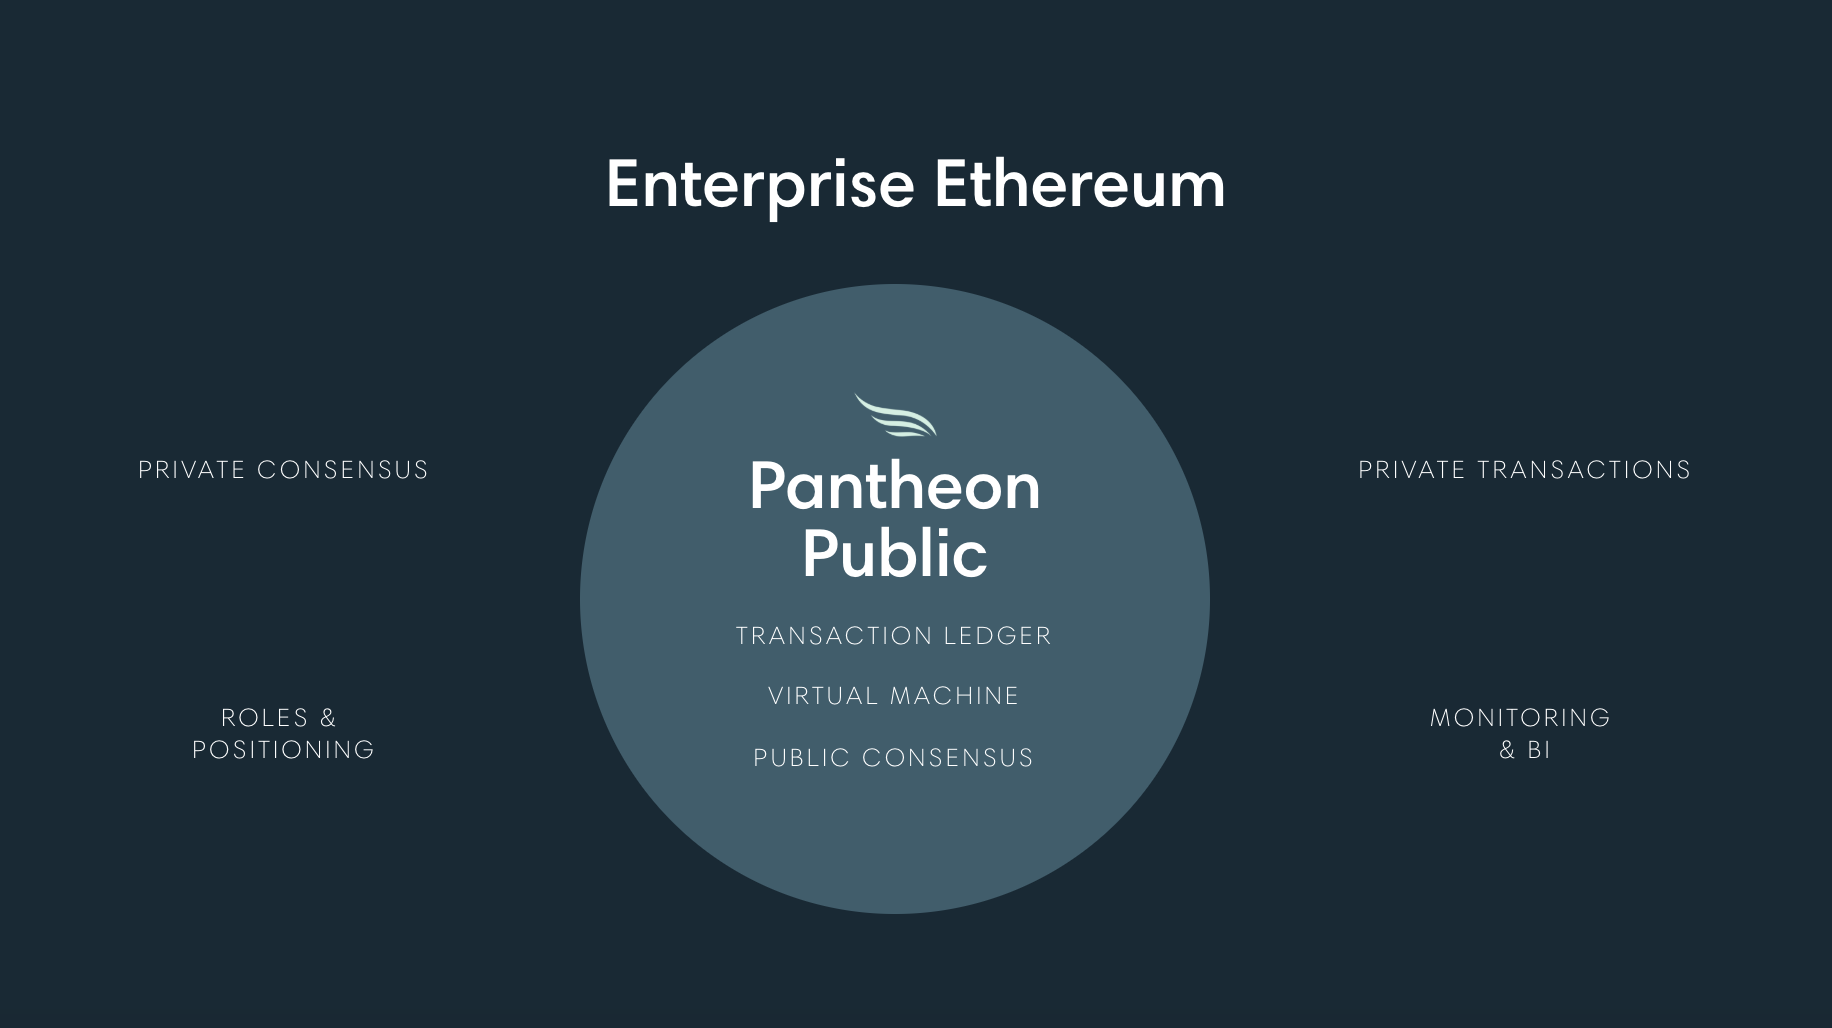 ConsenSys Engineering Team PegaSys Releases Open Source Ethereum Client Pantheon